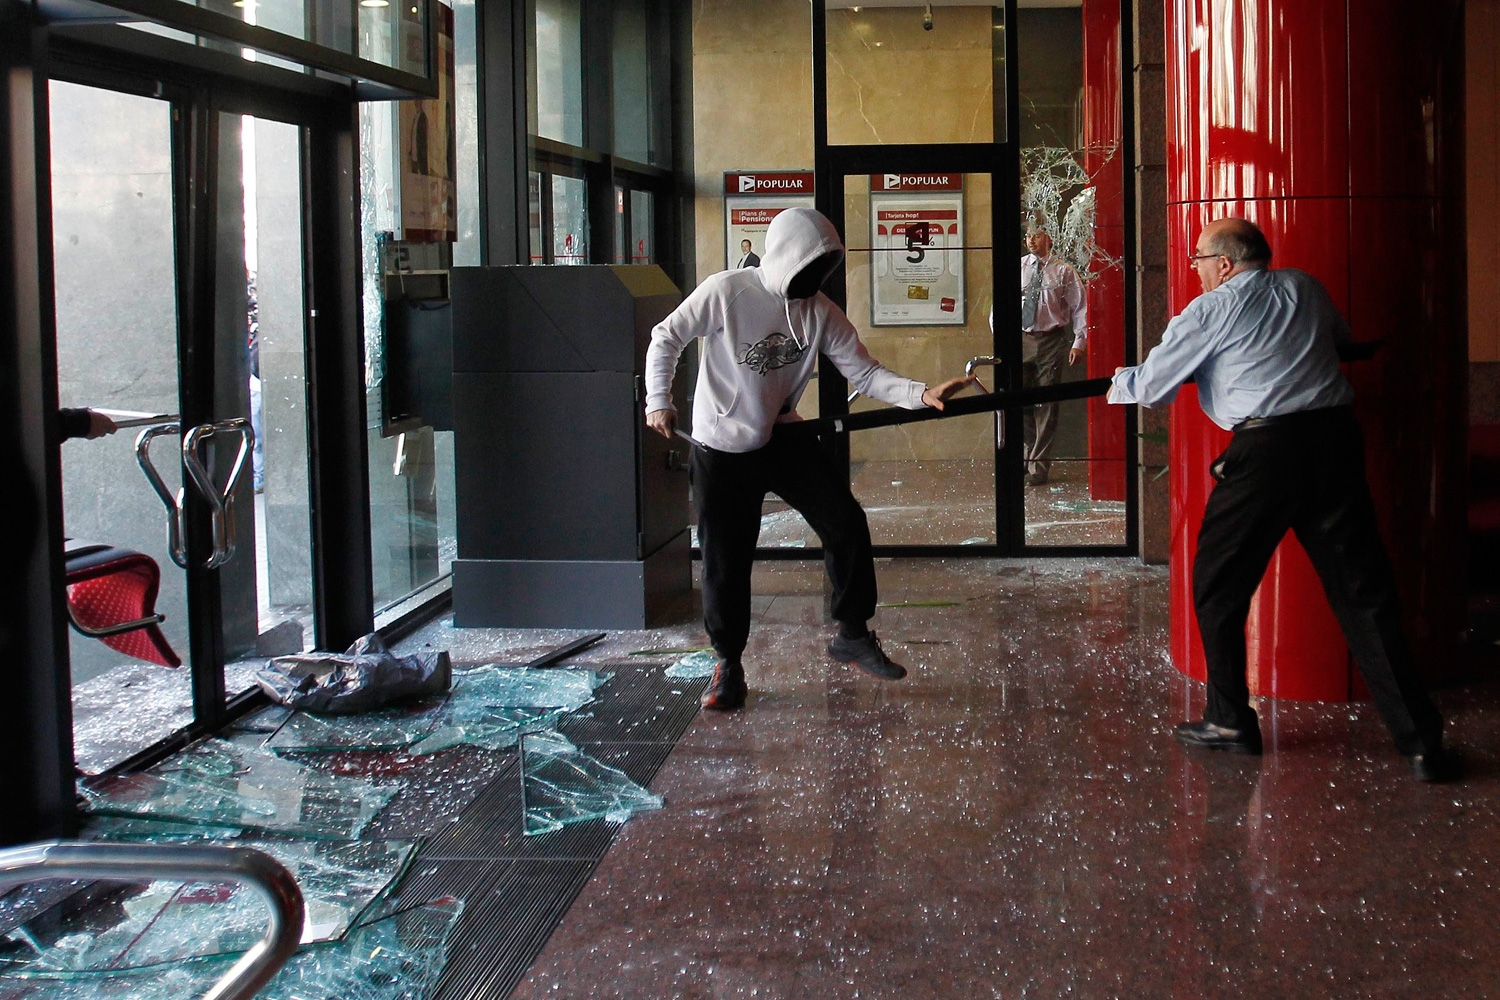 Feb. 29, 2012. A man confronts a hooded protester who was vandalising a bank during a protest against cuts in public education in Barcelona .